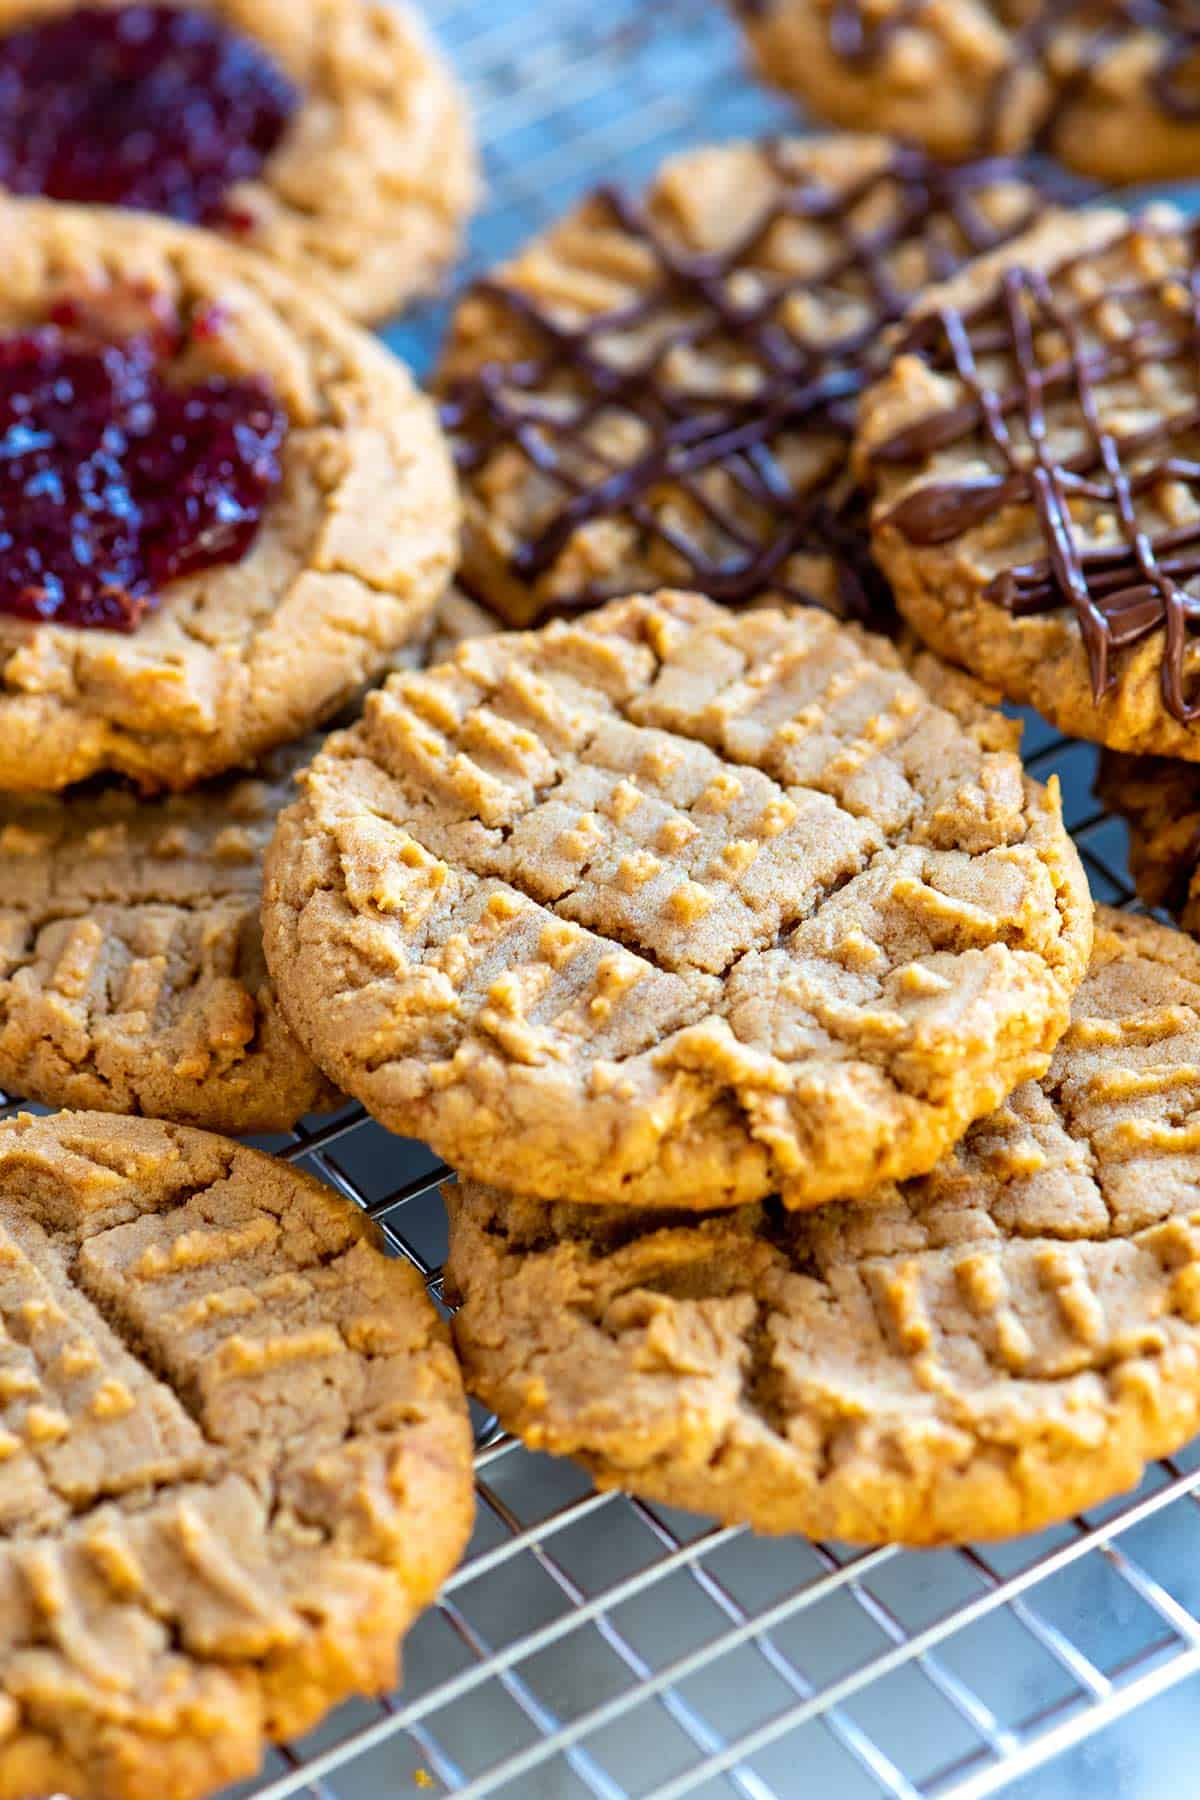 How to Make the Best Flourless Peanut Butter Cookies